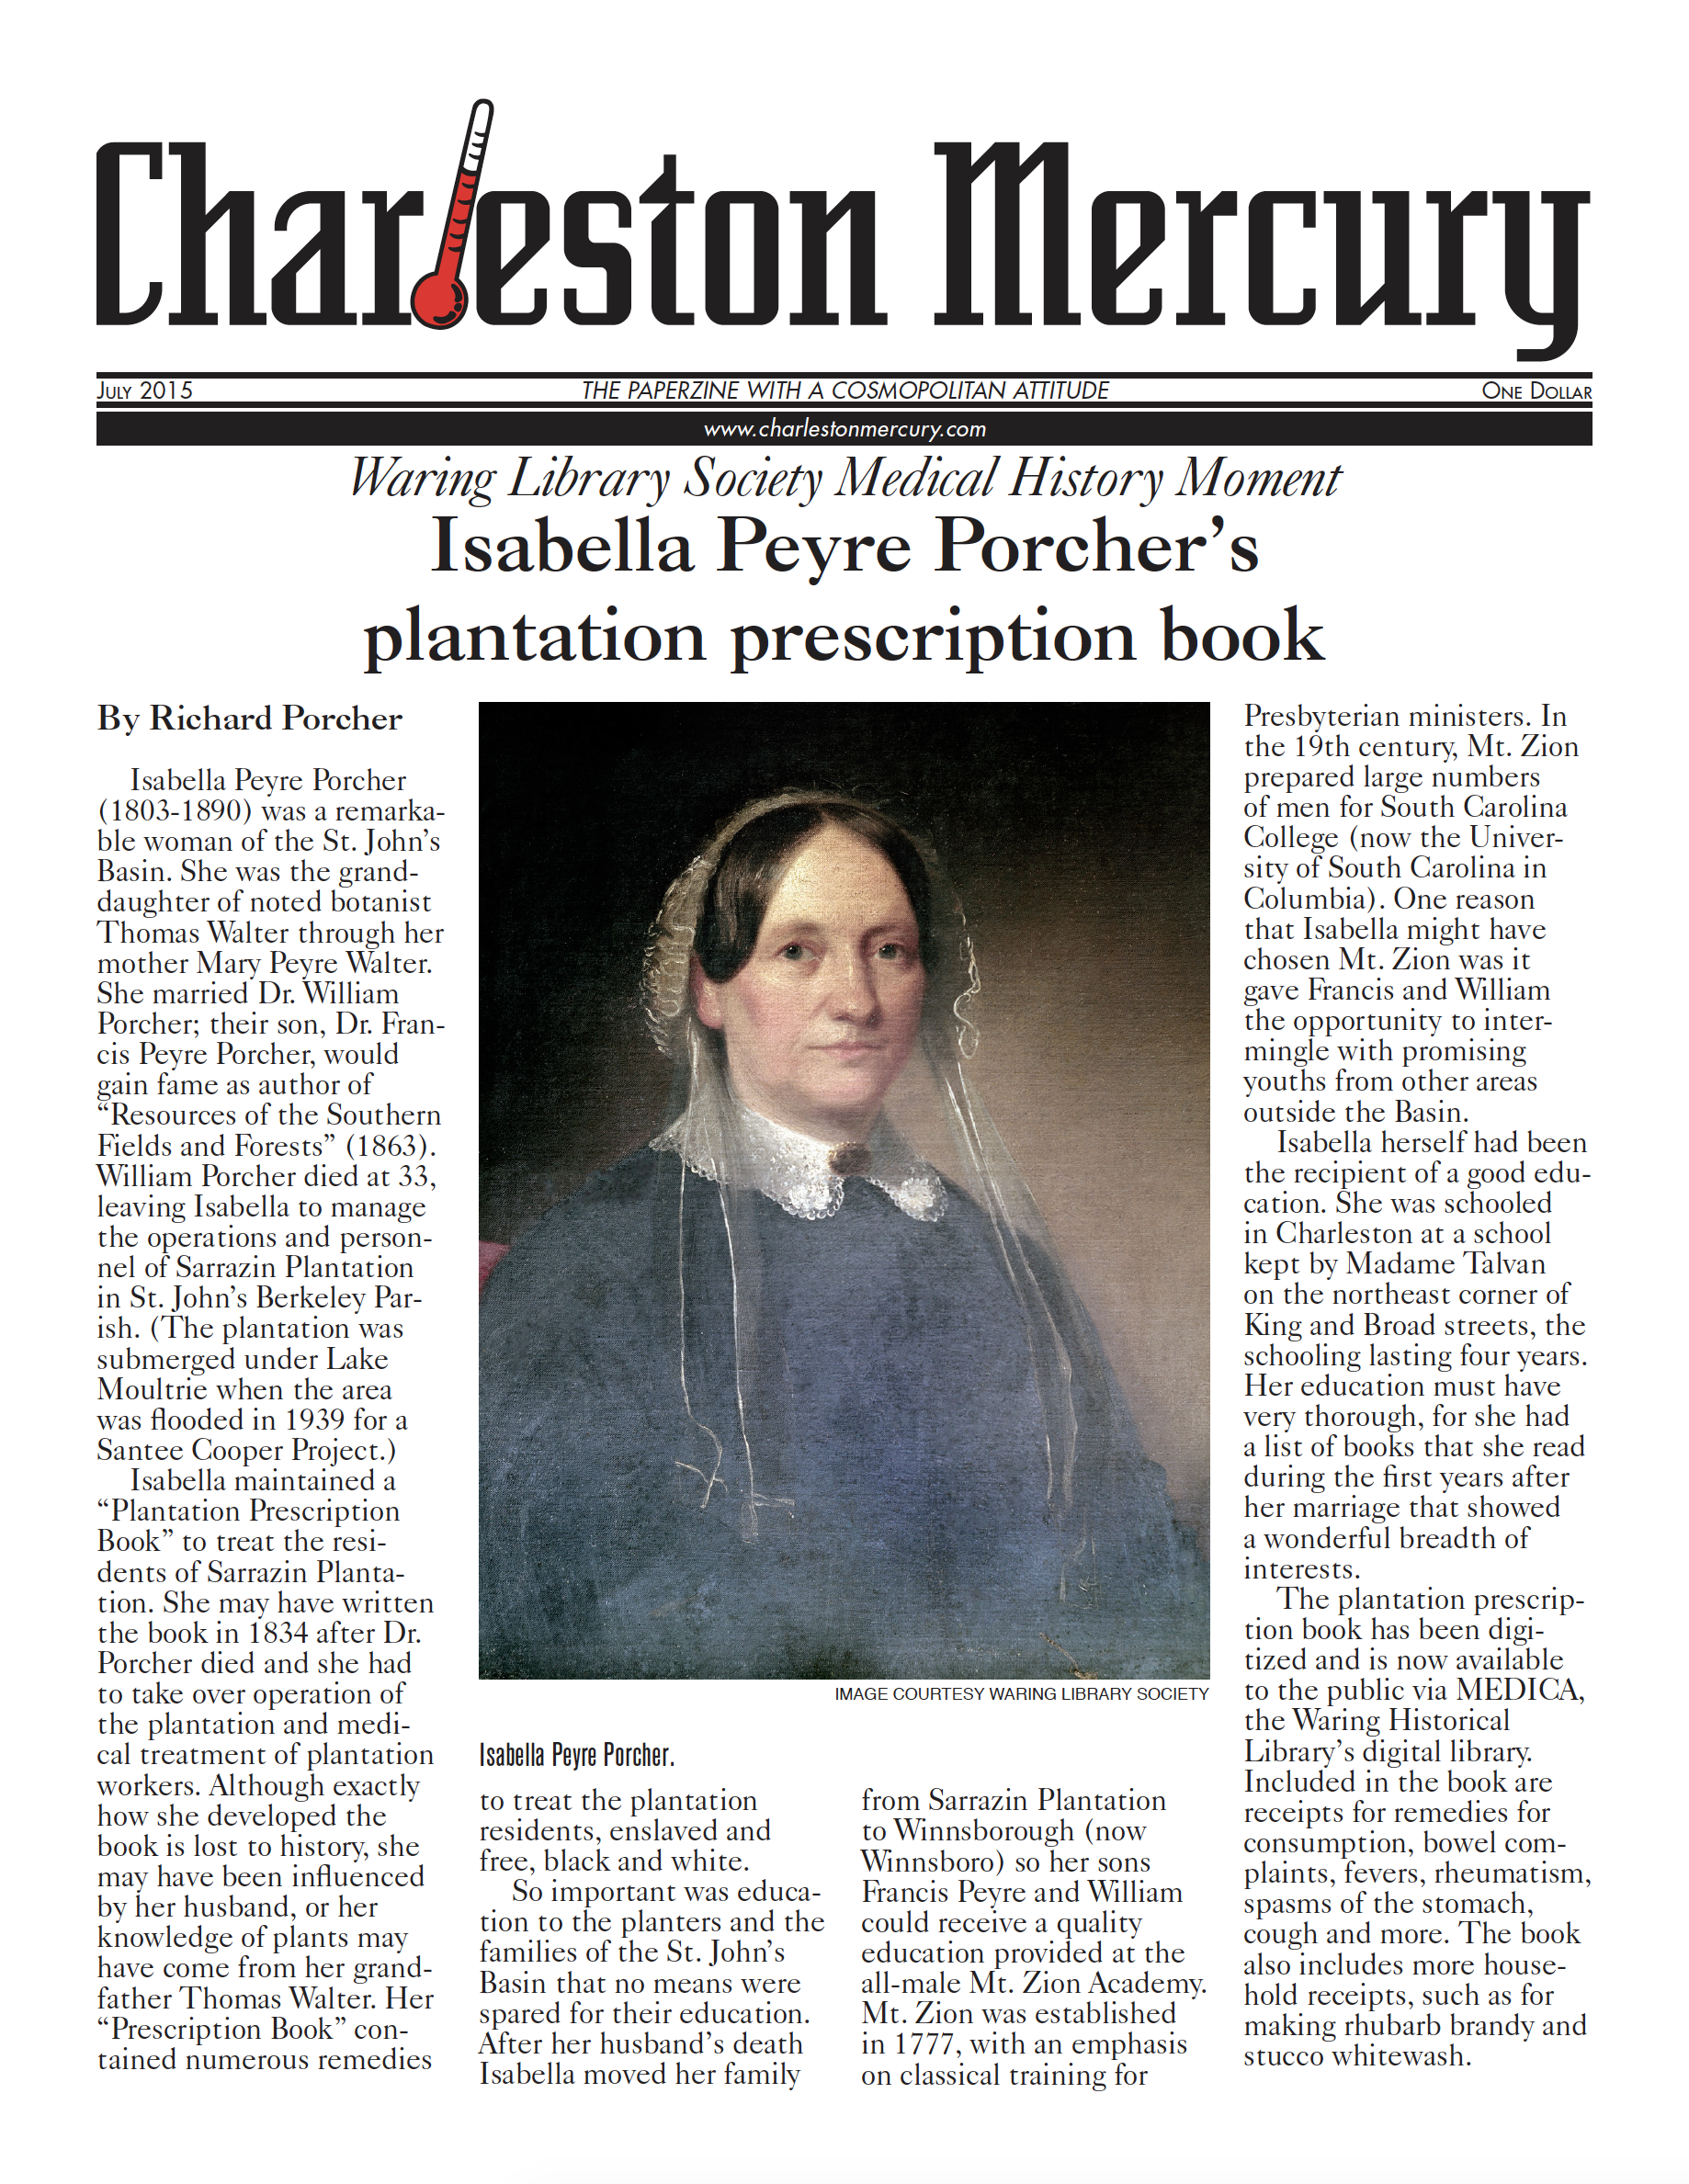 Charleston Mercury, July 2015